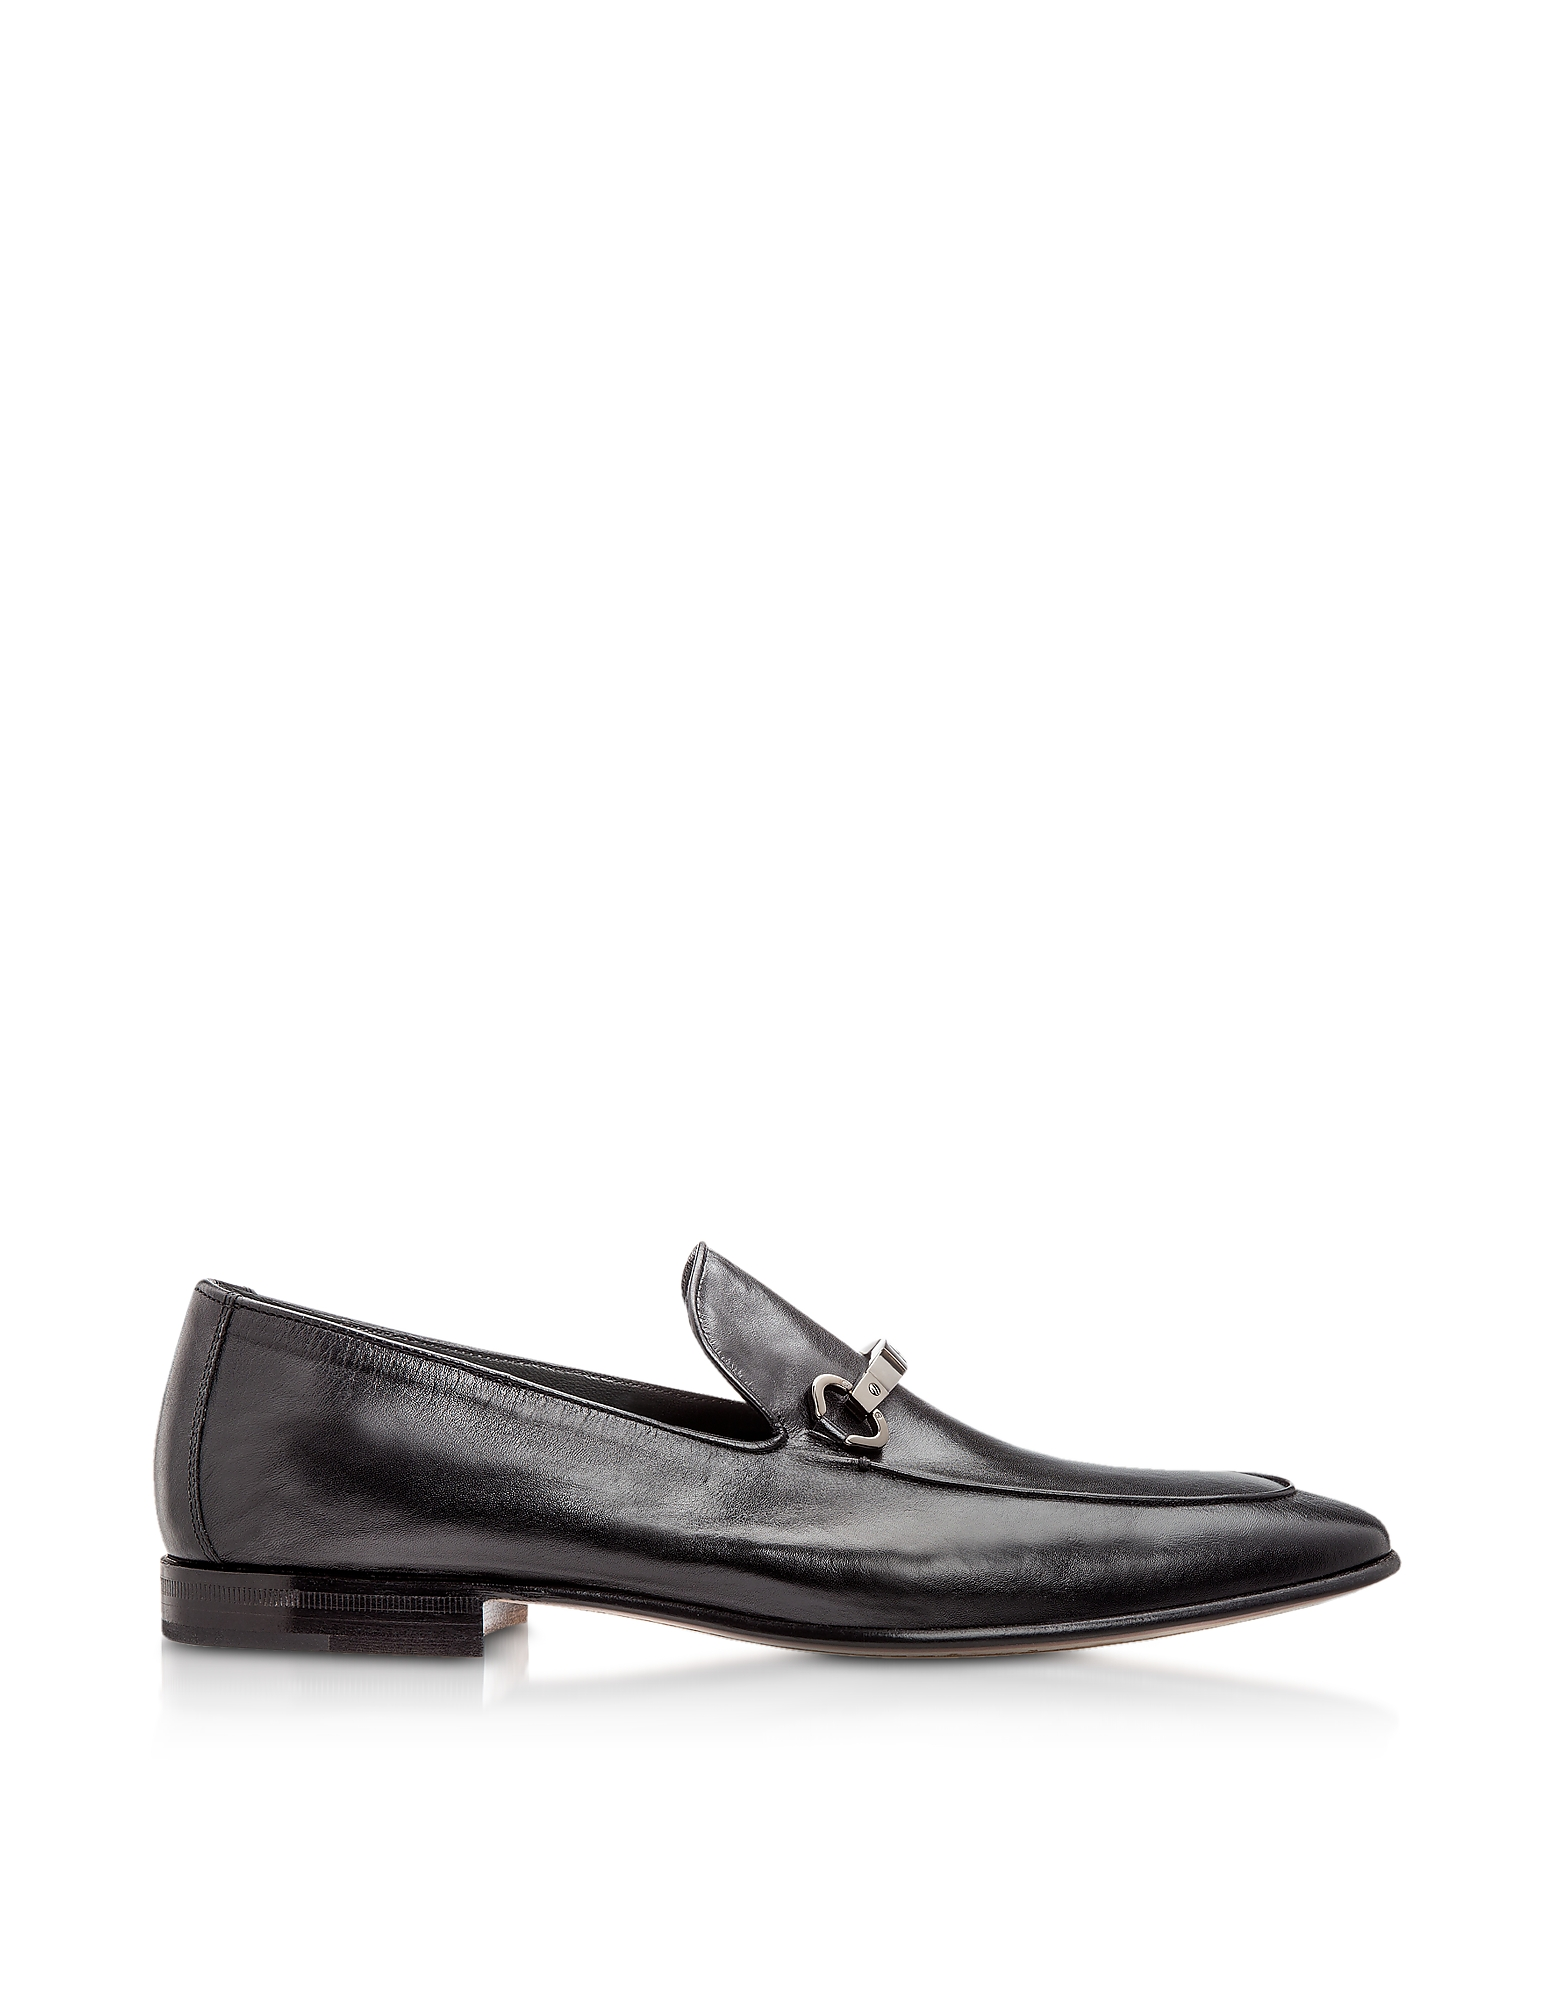 Moreschi Shoes, Adelaide Black Kangaroo Leather Loafer Shoes